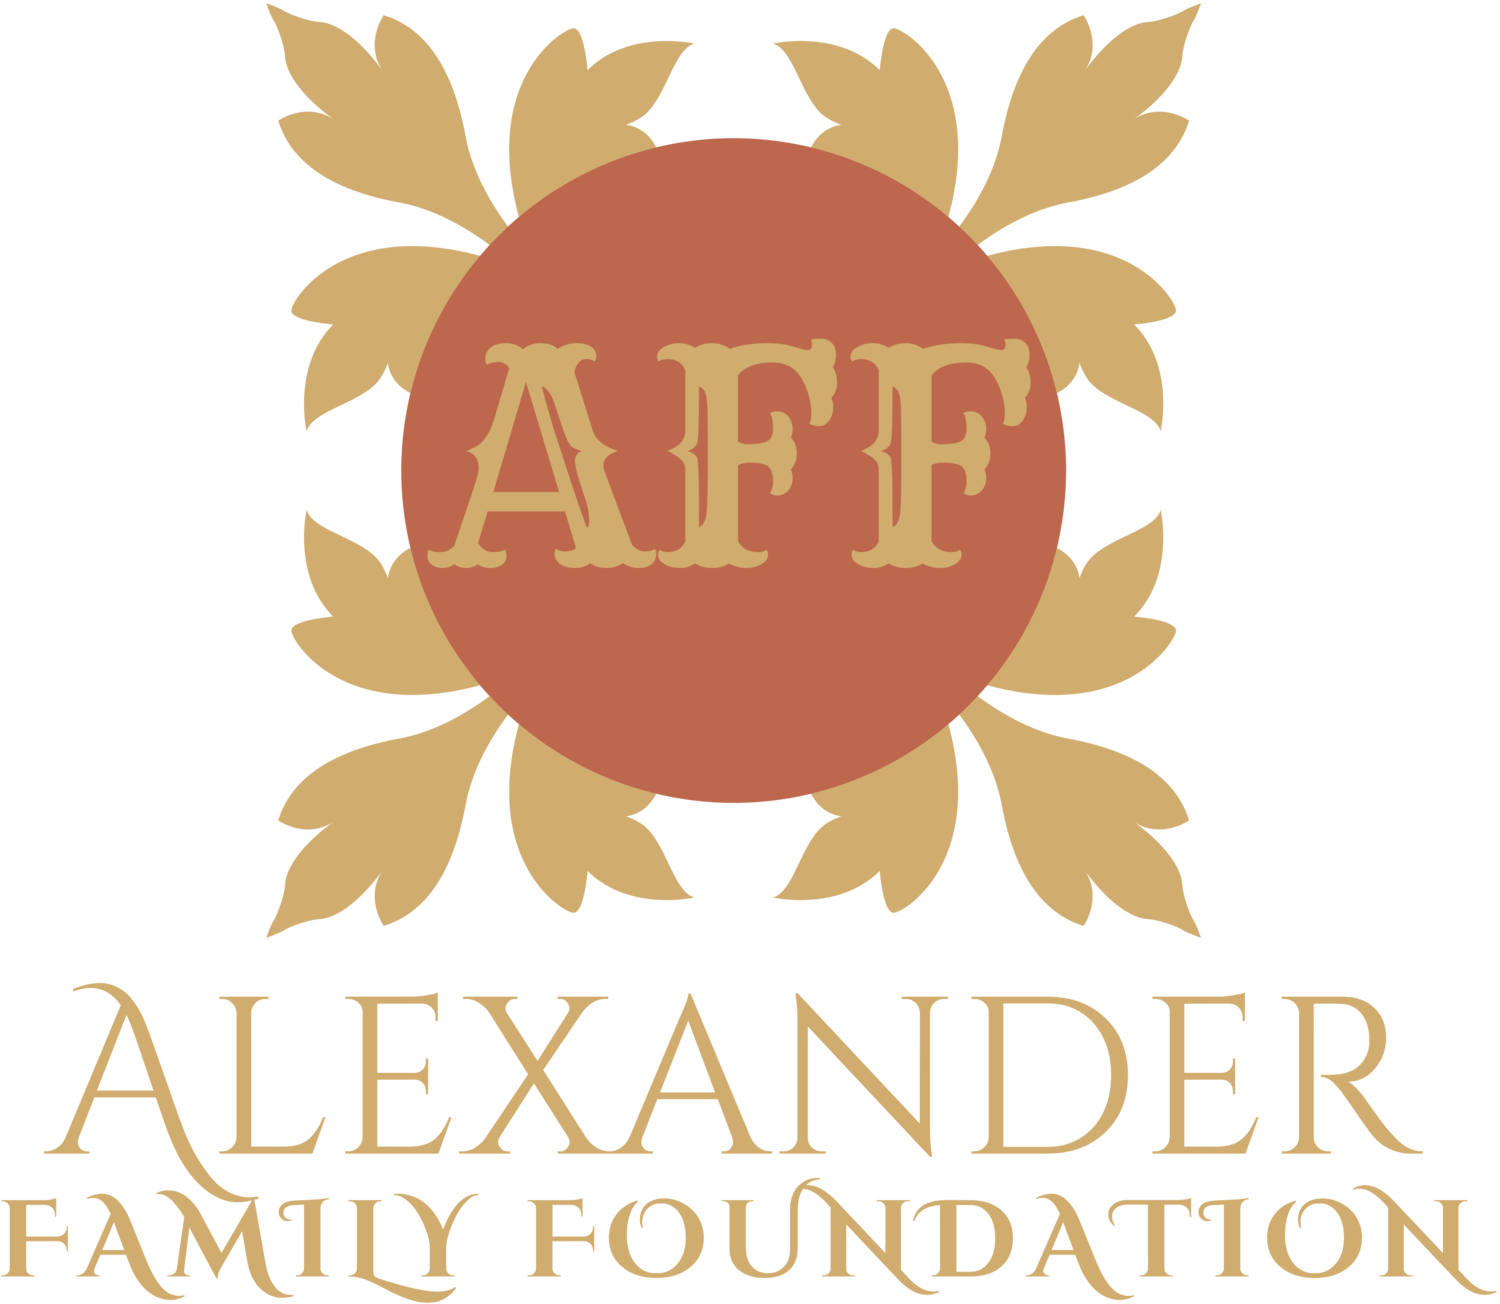 Alexander Family Foundation, Inc.